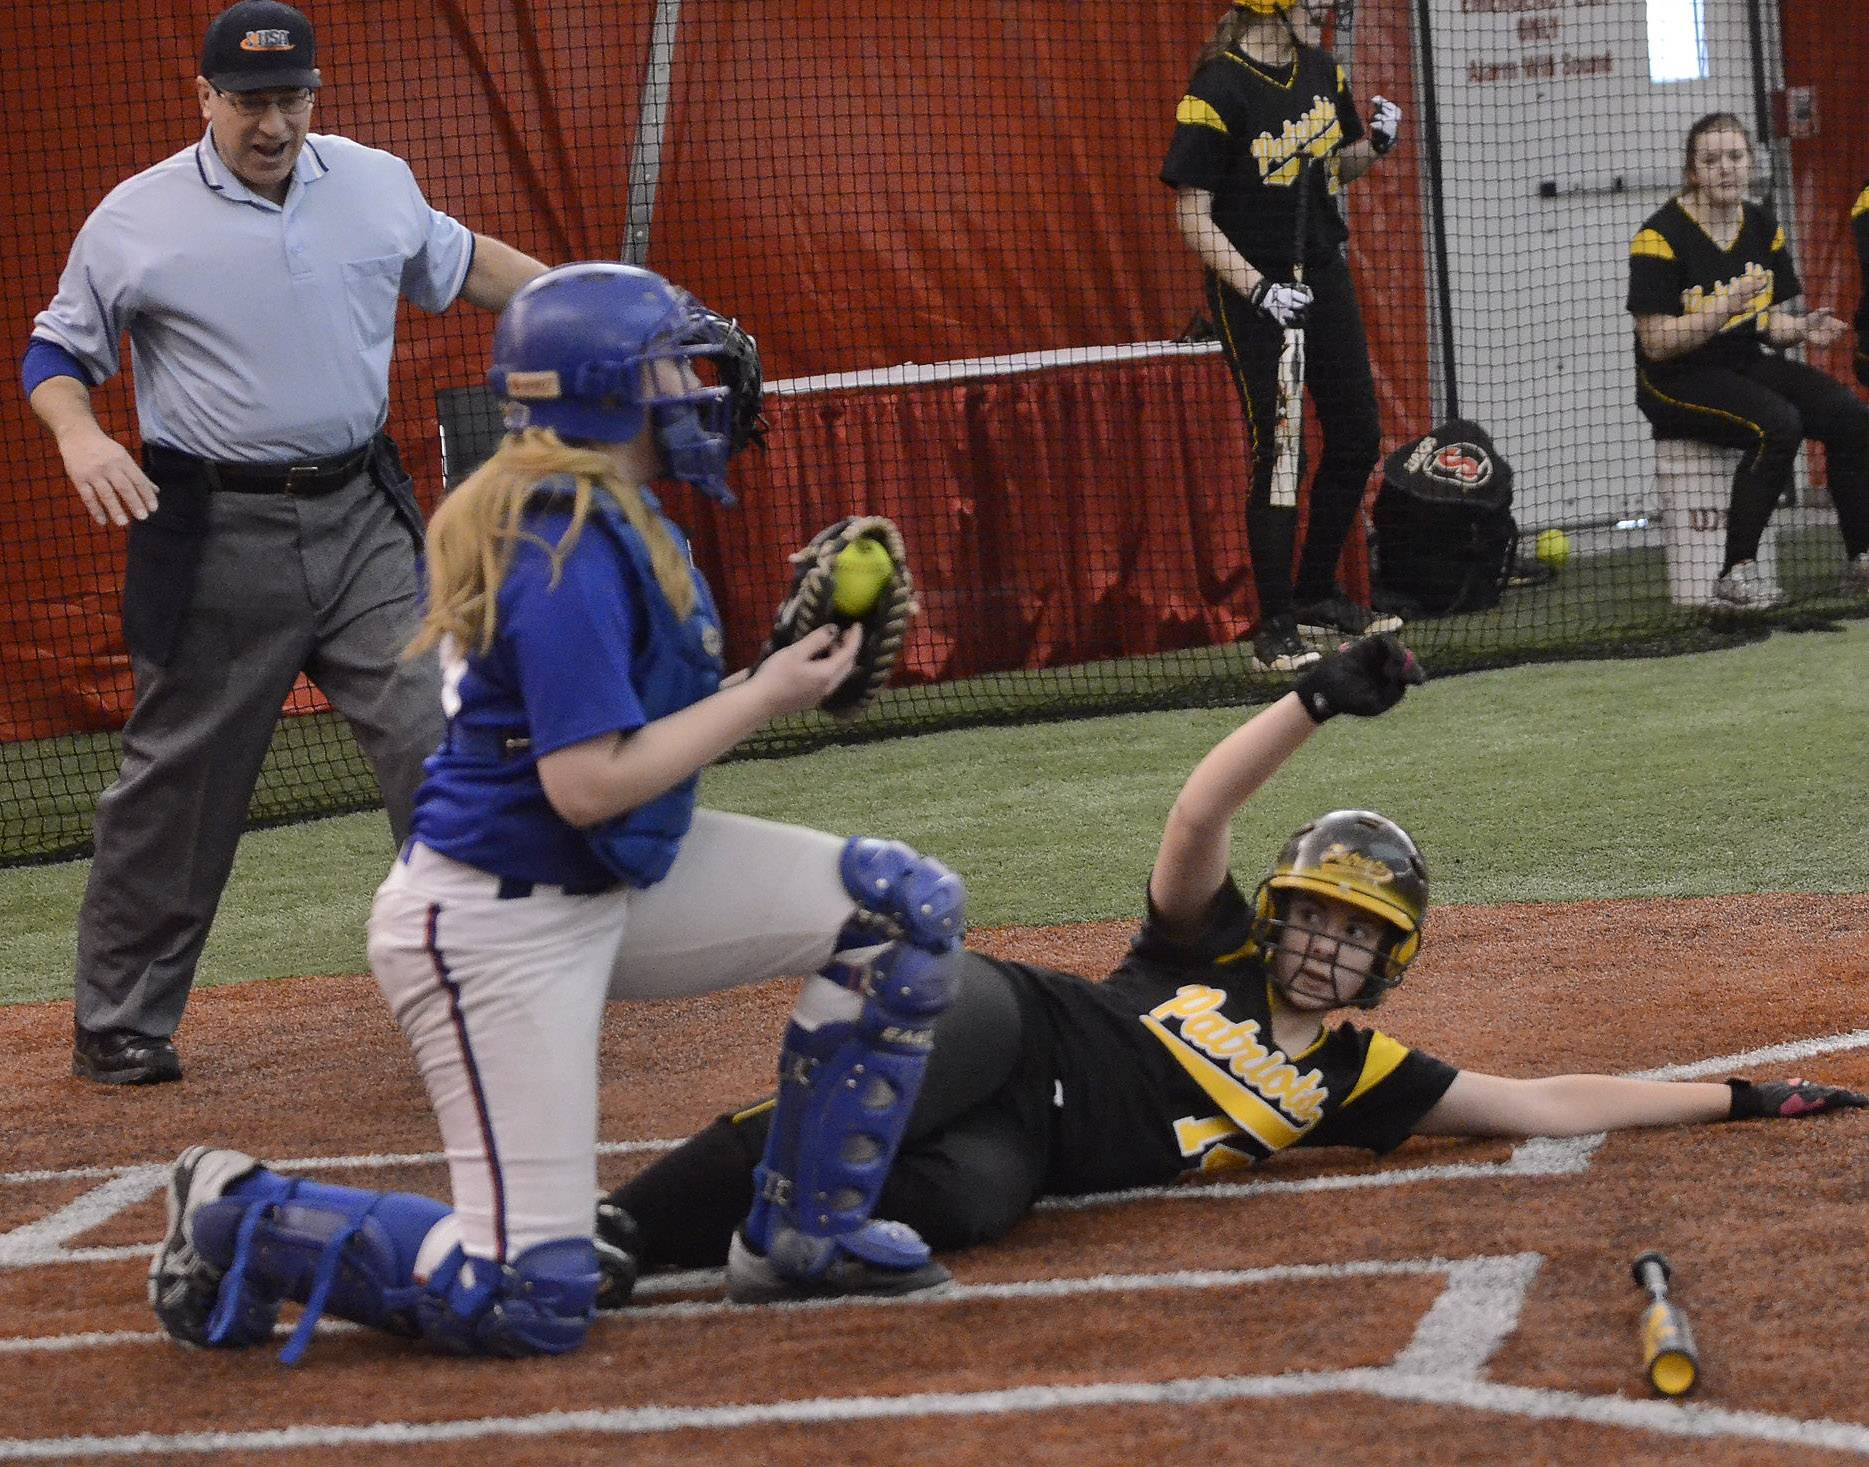 Stevenson's Molly Thon is safe at the plate in the fifth inning as she beats the tag by Lakes catcher Abbi Mehnert during action at The Dome in Rosemont on Thursday.